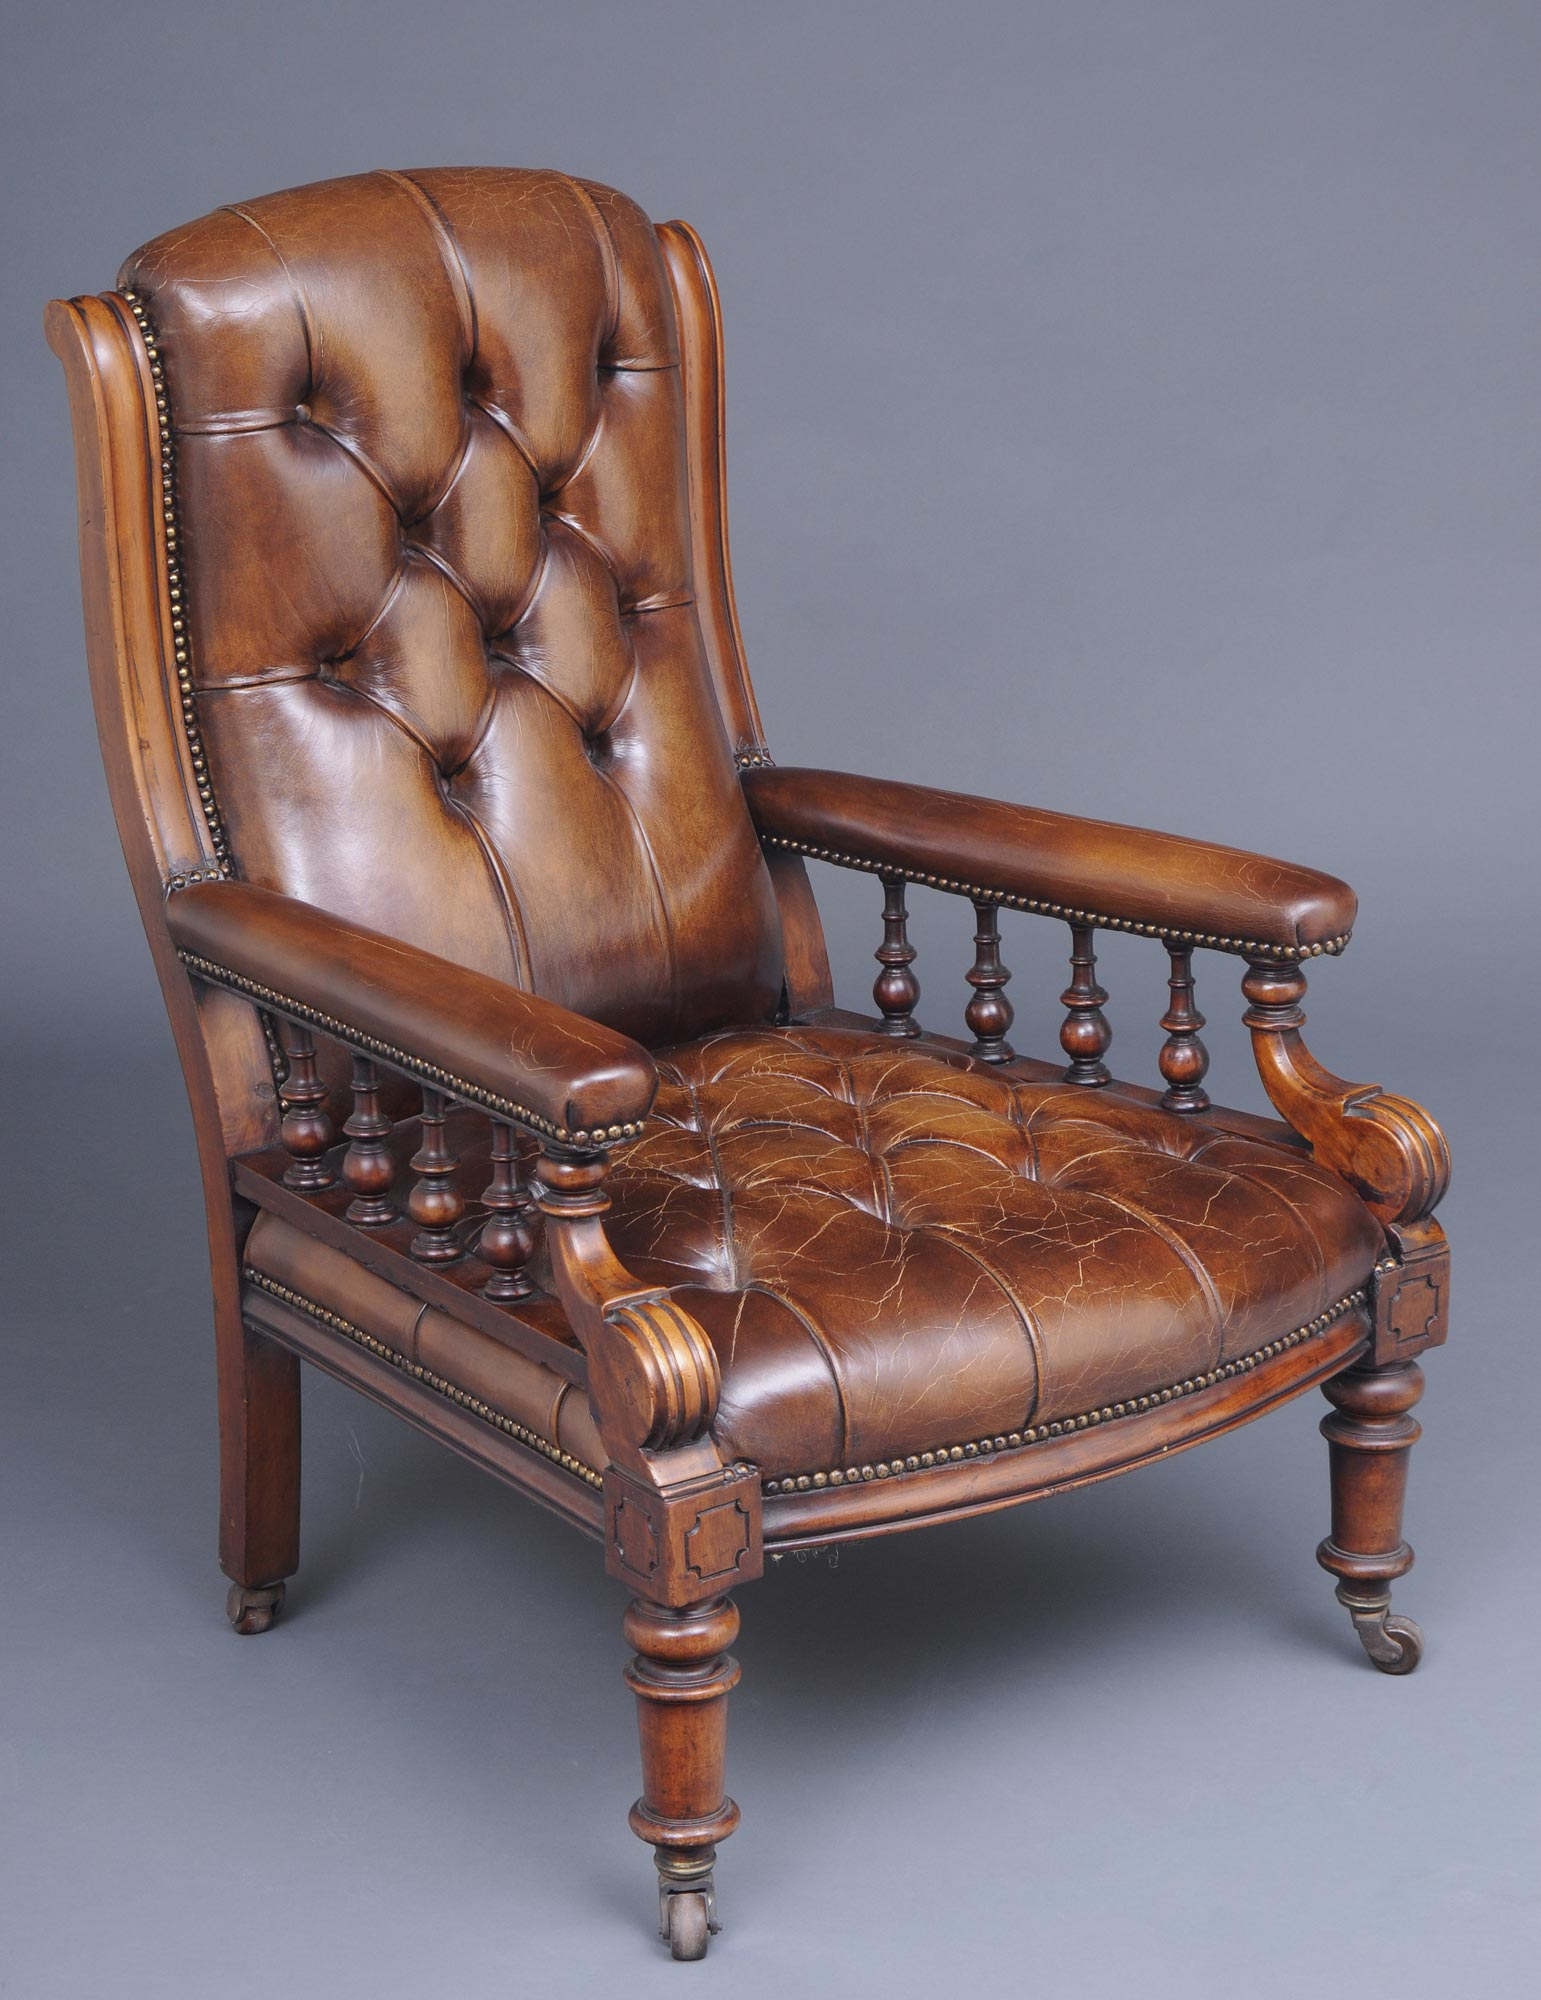 English Antique Victorian Mahogany and Leather Library Armchair, Circa 1860 - Antique Library Chairs Antique English Mahogany Library Armchair